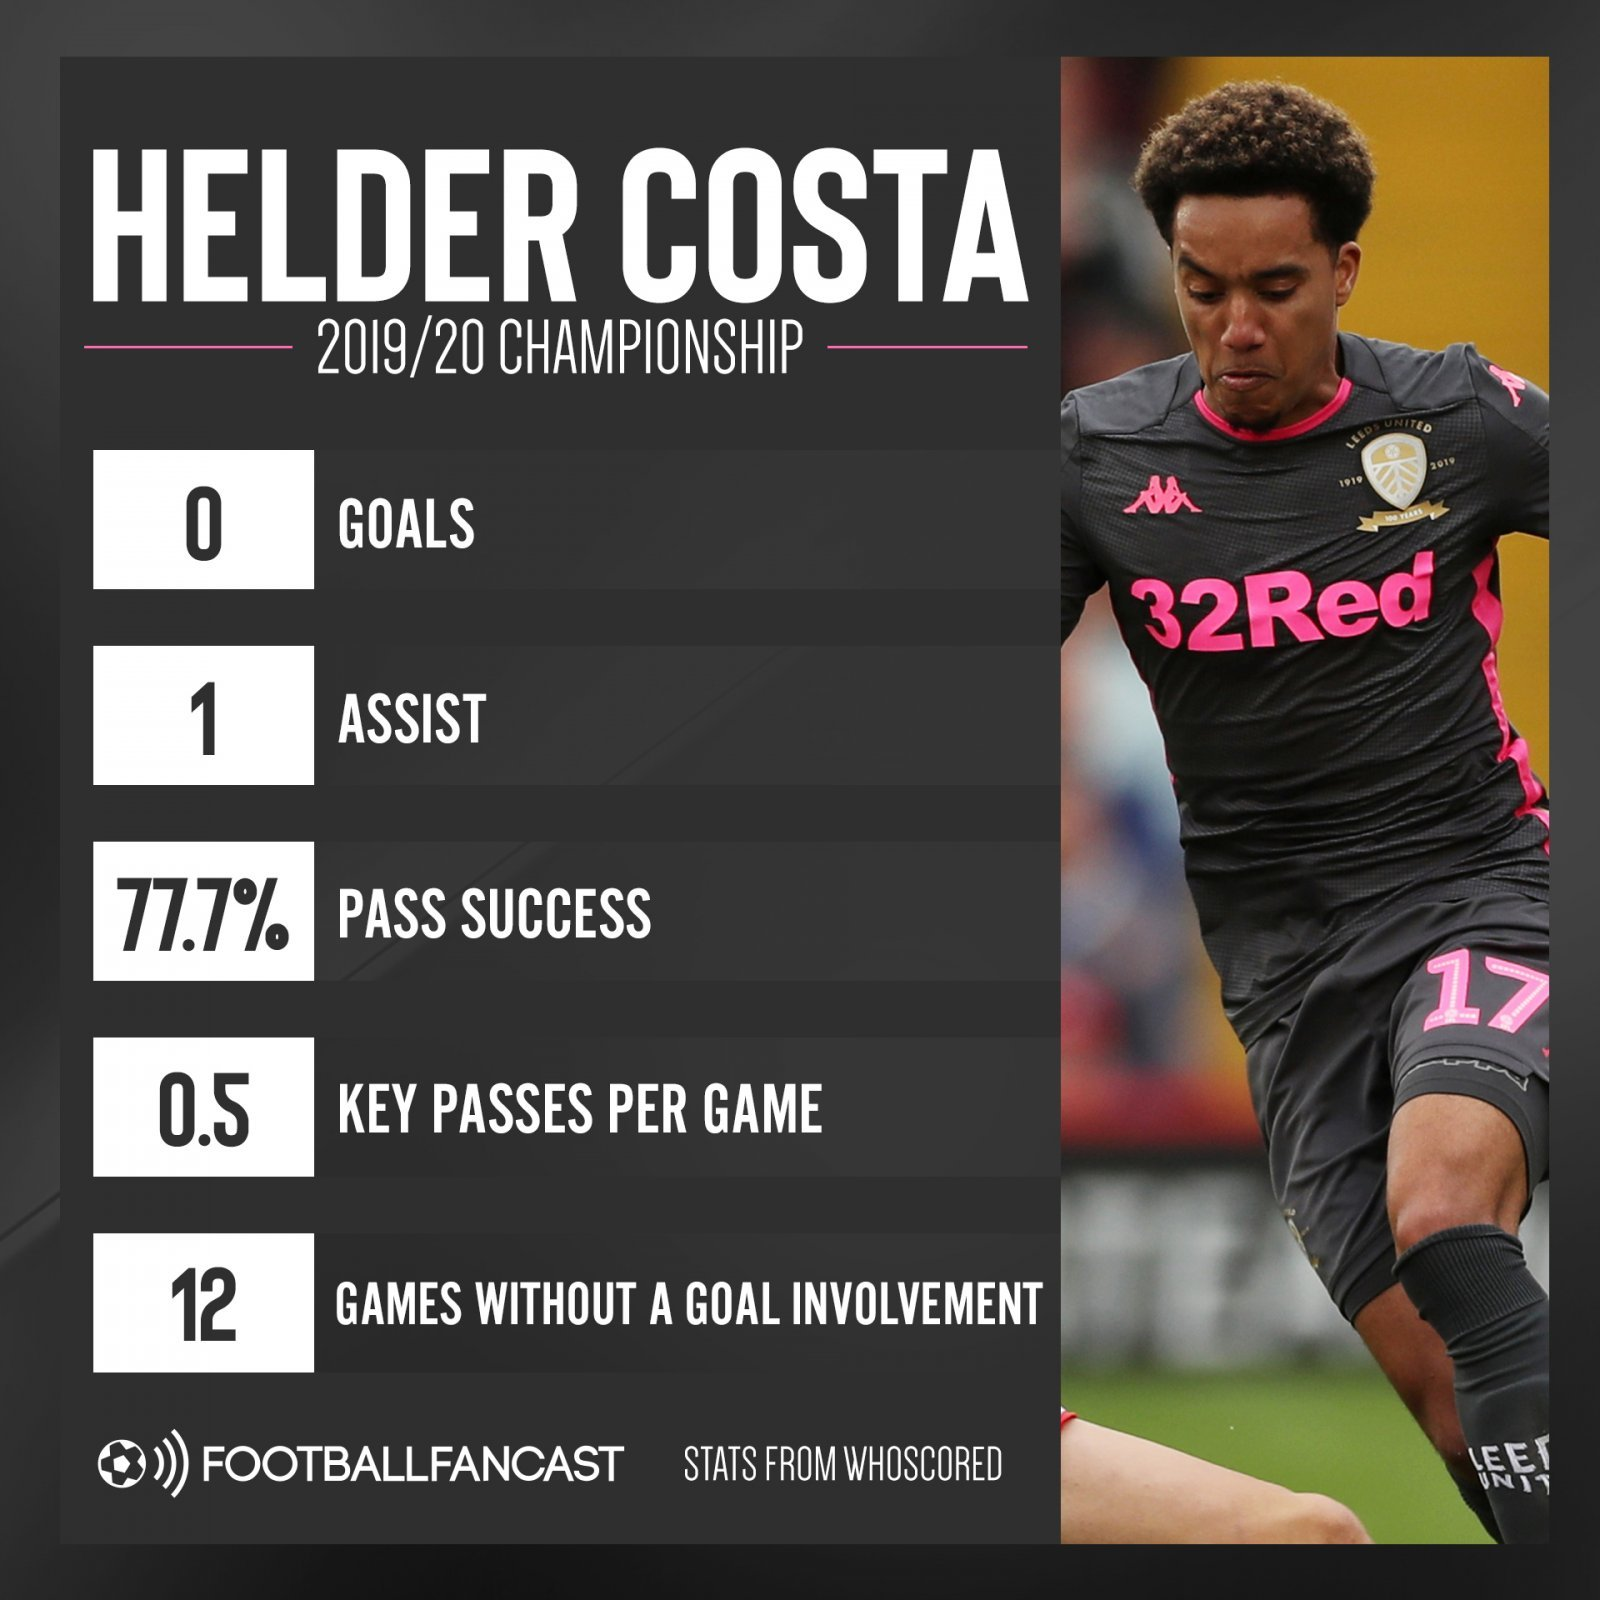 Helder Costa 2019 20 Championship - Daylight robbery: Wolves offload beginning to look all the more genius - opinion